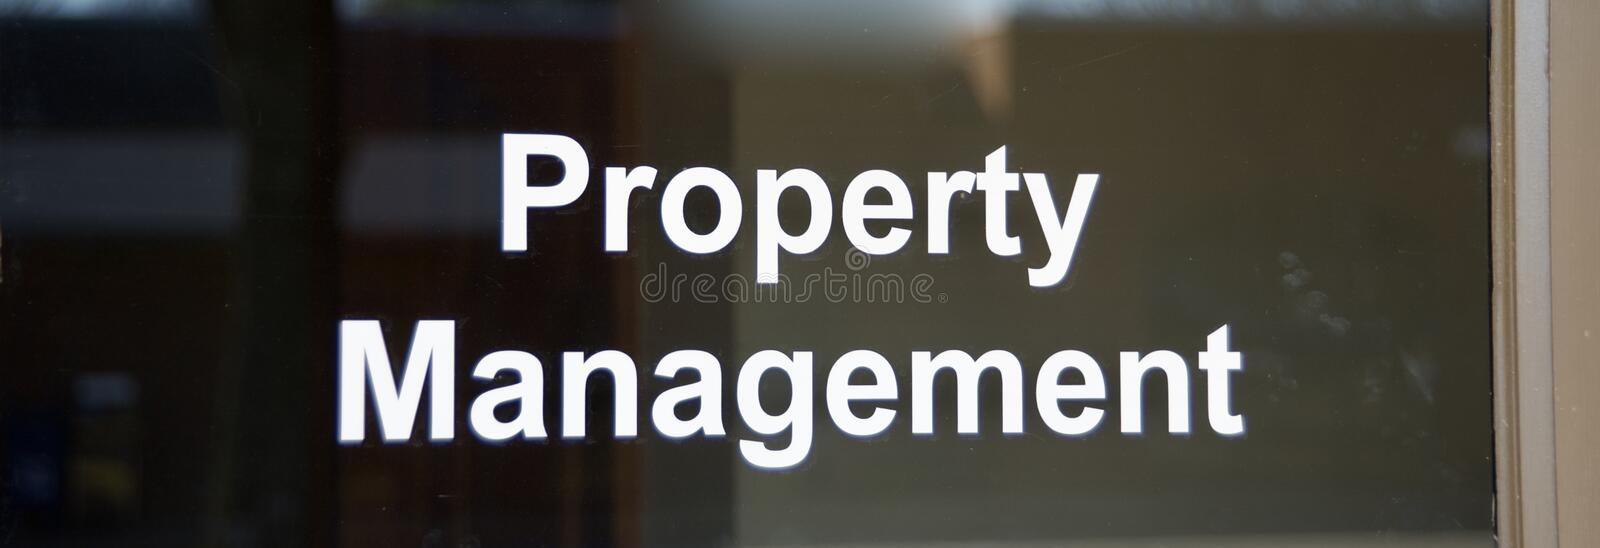 Real Estate and Retail Property Management Office royalty free stock images